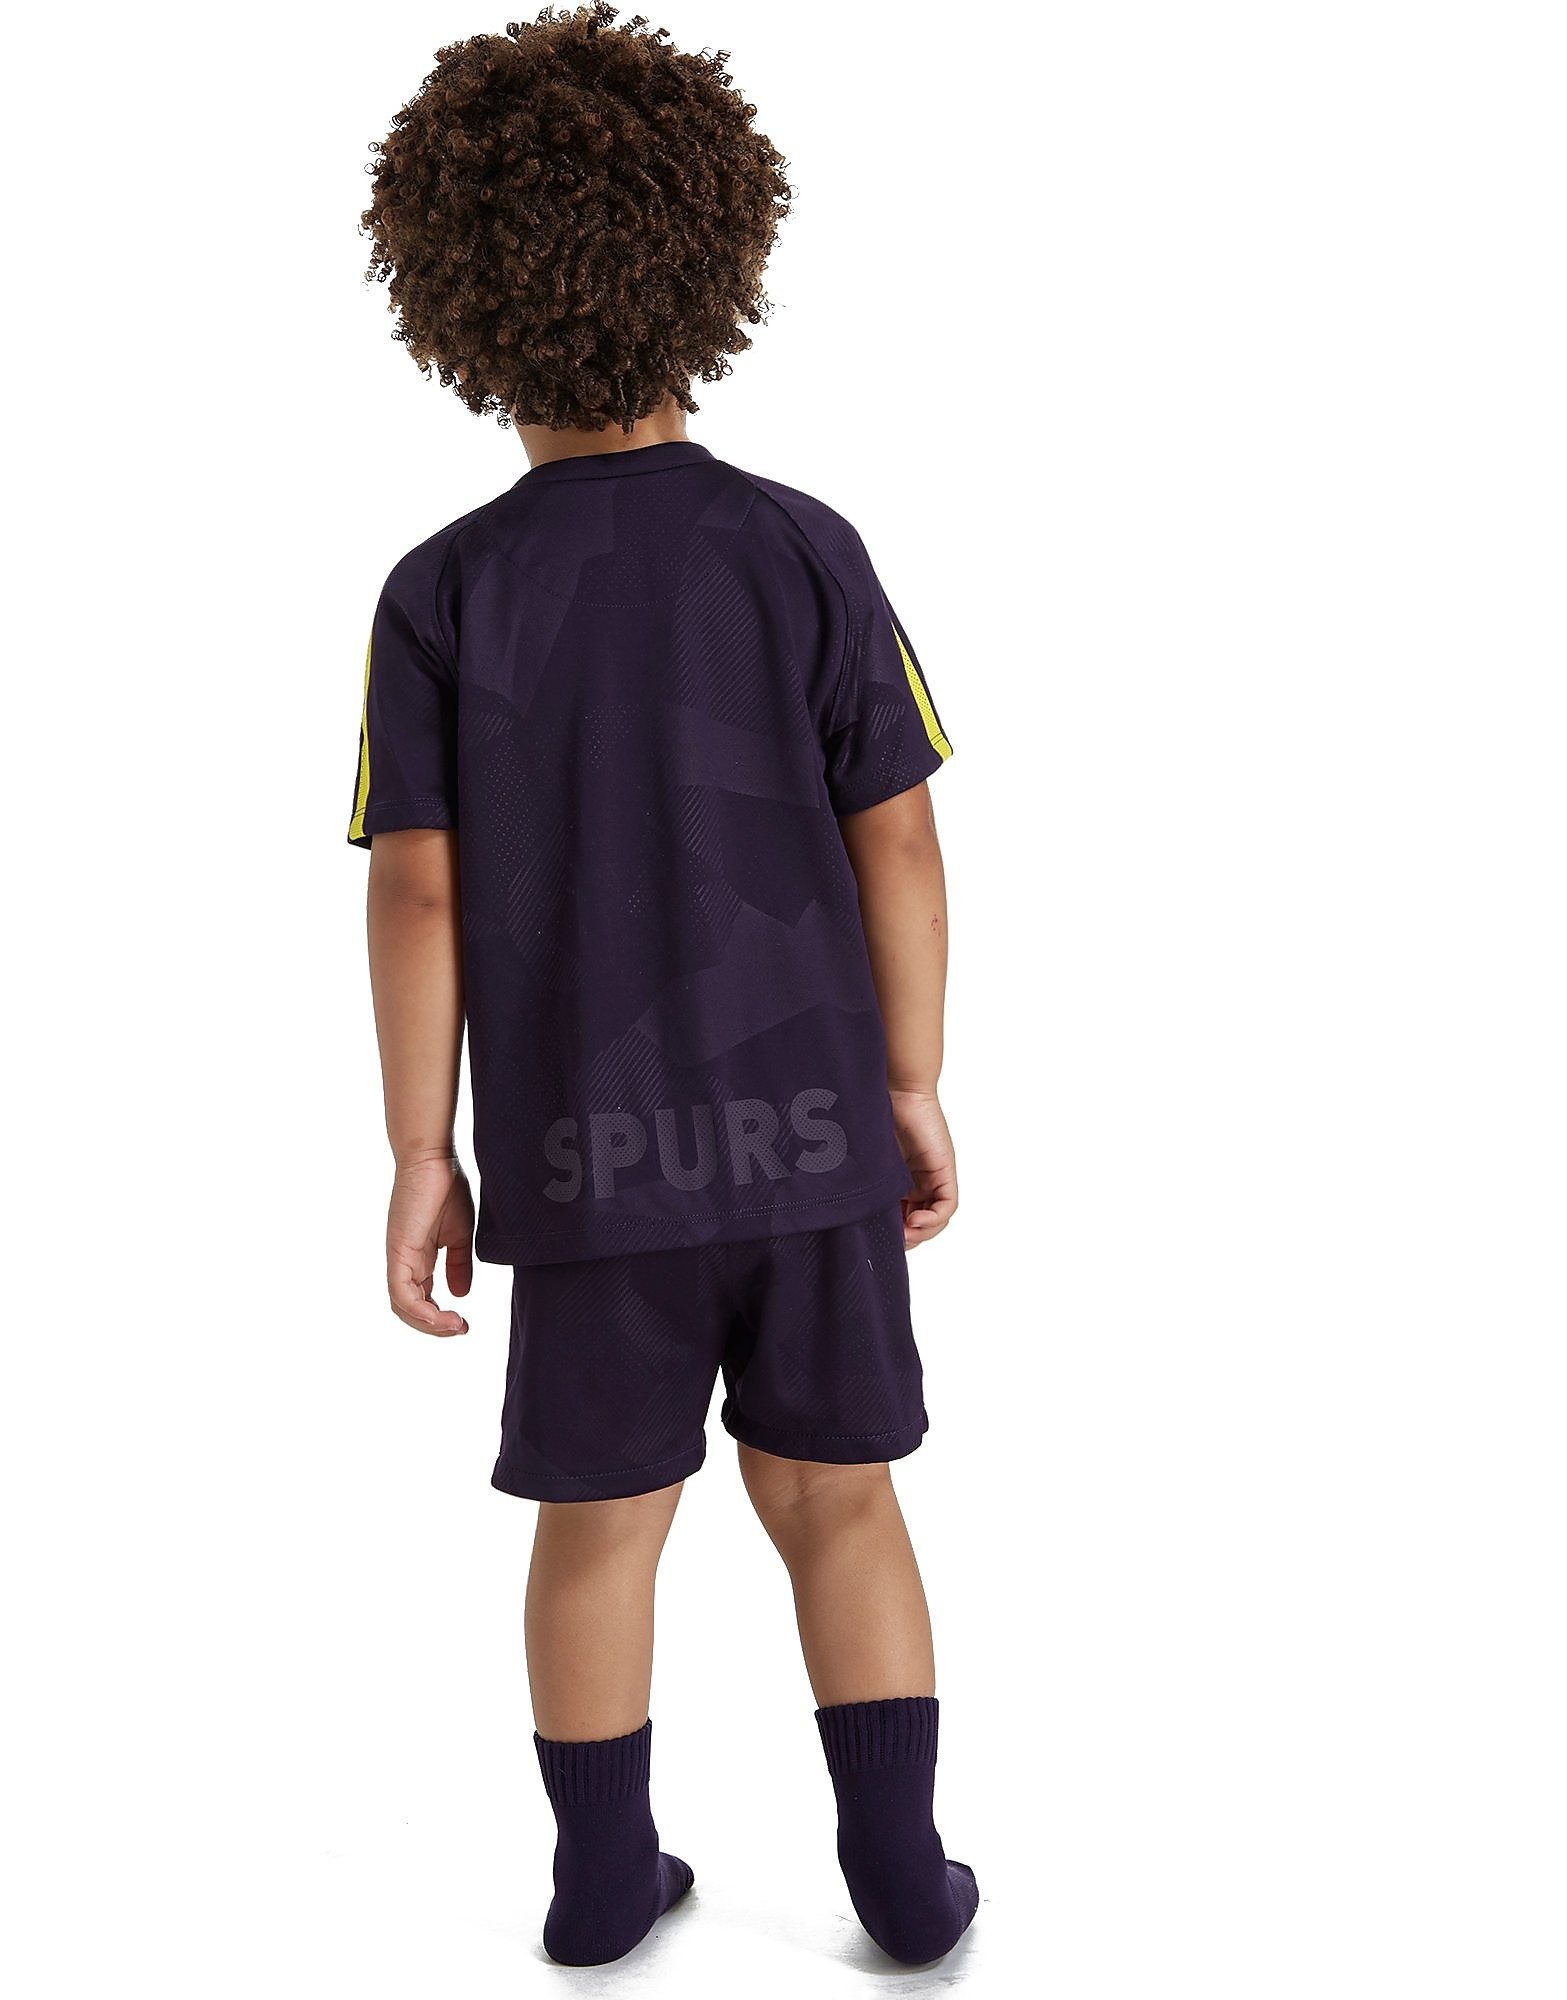 Nike Tottenham Hotspur FC 2017/18 Third Kit Infant PRE